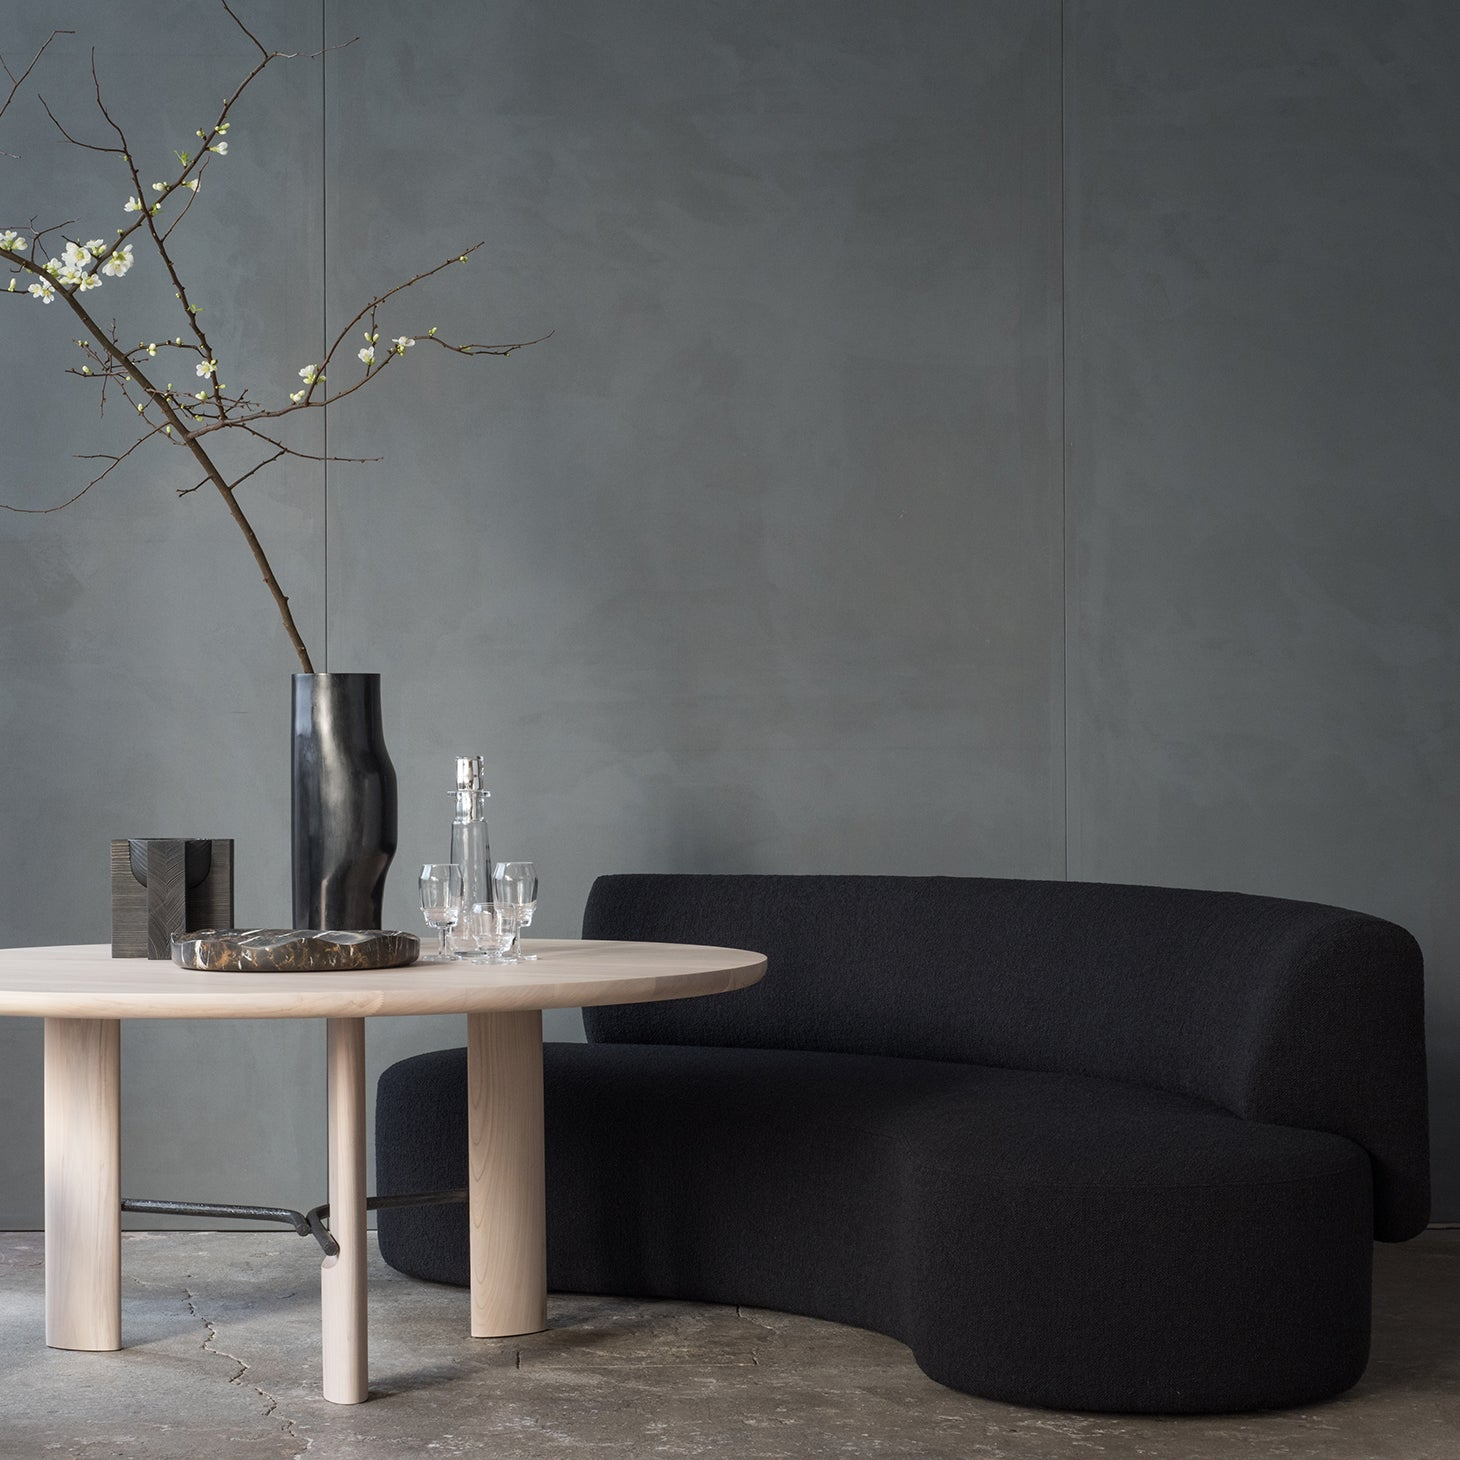 LEK Seating Christophe Delcourt Designer Furniture Sku: 765-120-10017